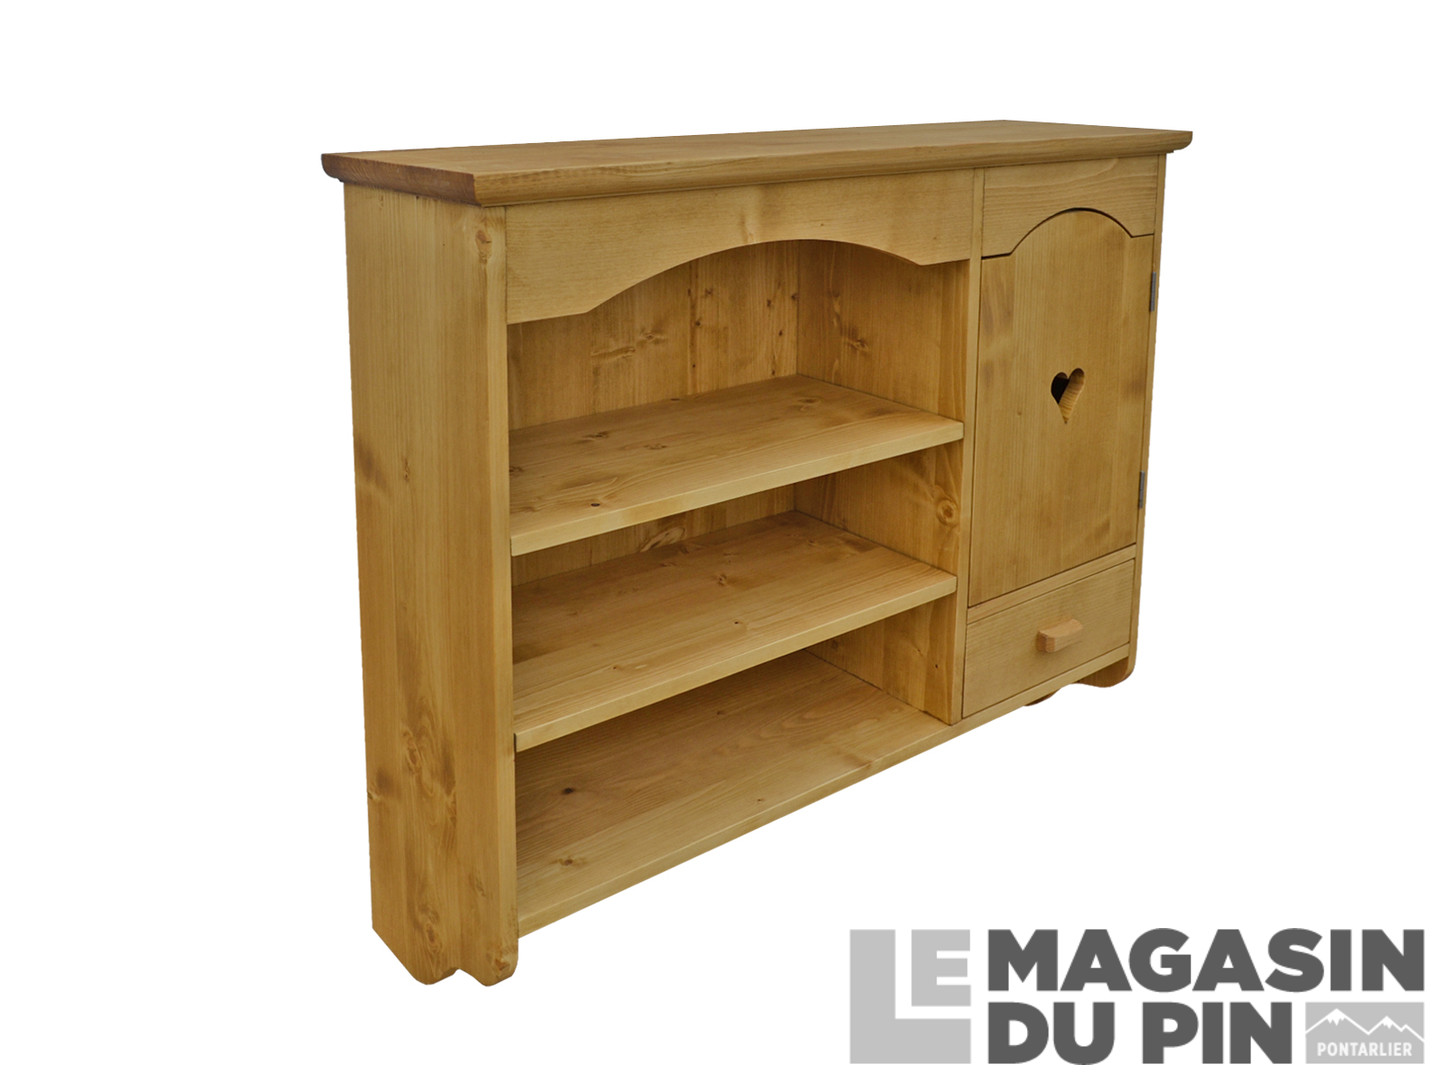 magasin meuble albertville elegant magasin meuble etoy new gobet meubles meubles u dcoration u. Black Bedroom Furniture Sets. Home Design Ideas